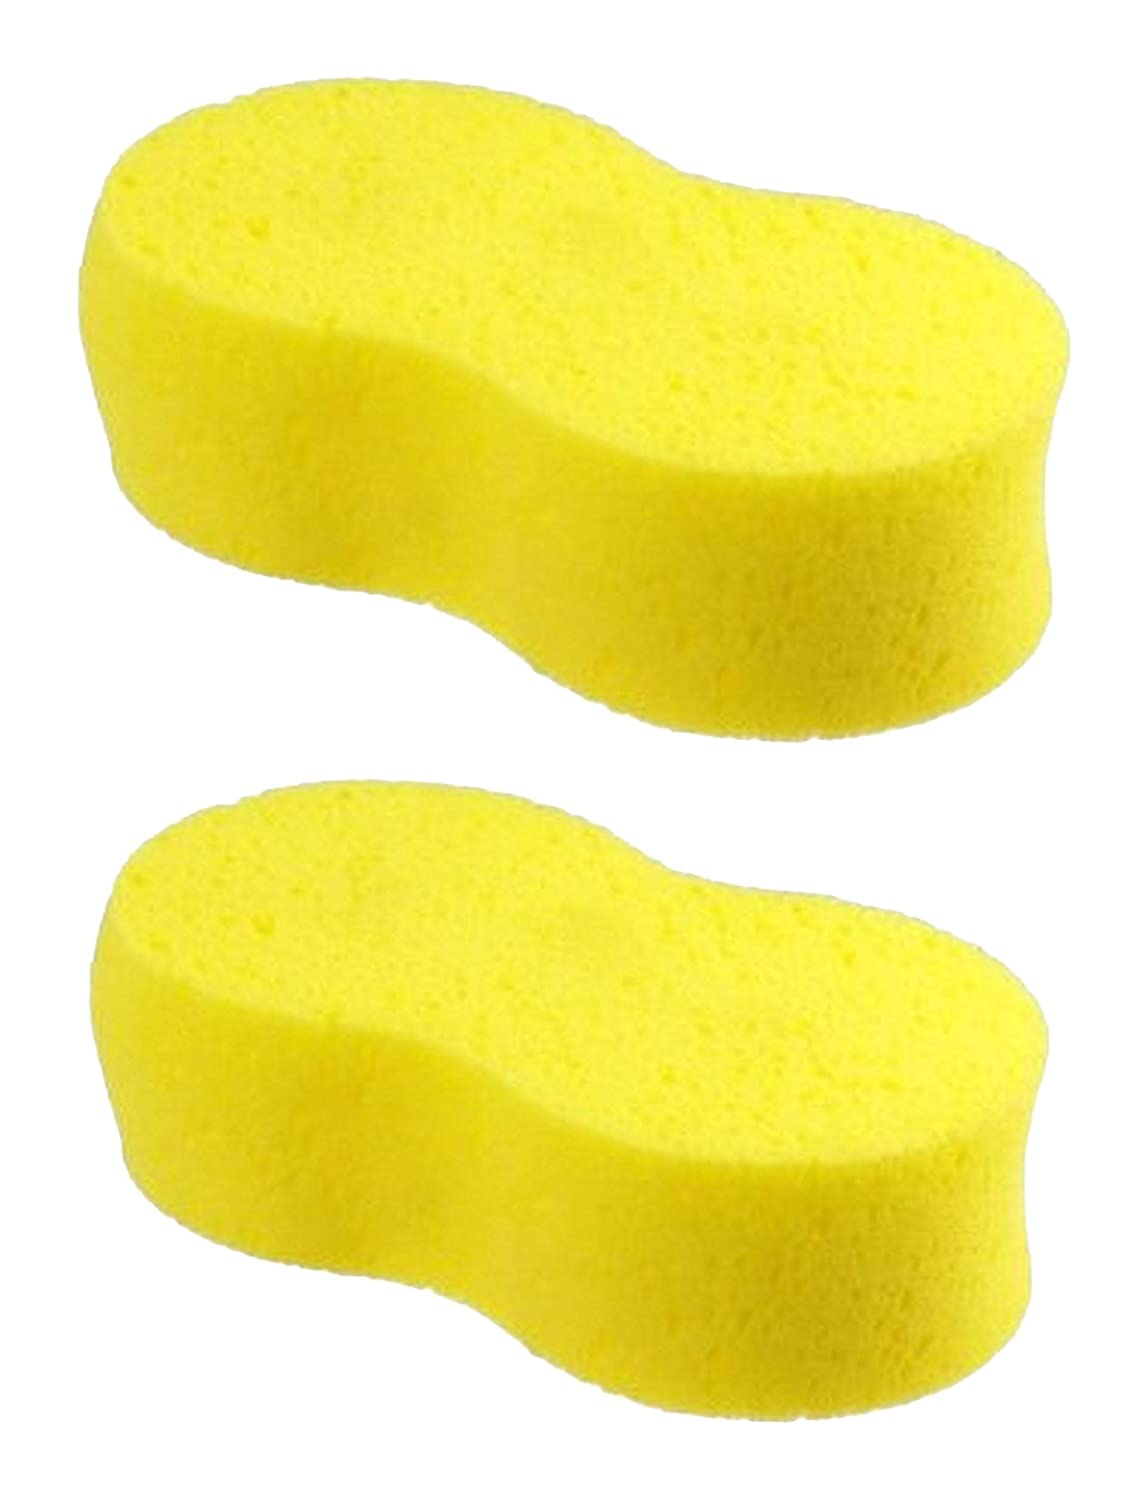 ALAZCO 2 Super-Absorbent Sponge - Jumbo 9' x 5' - Holds 34 oz of Liquid - Car Wash, Cleaning, Spill Mop-up 2pckjumboufosponge